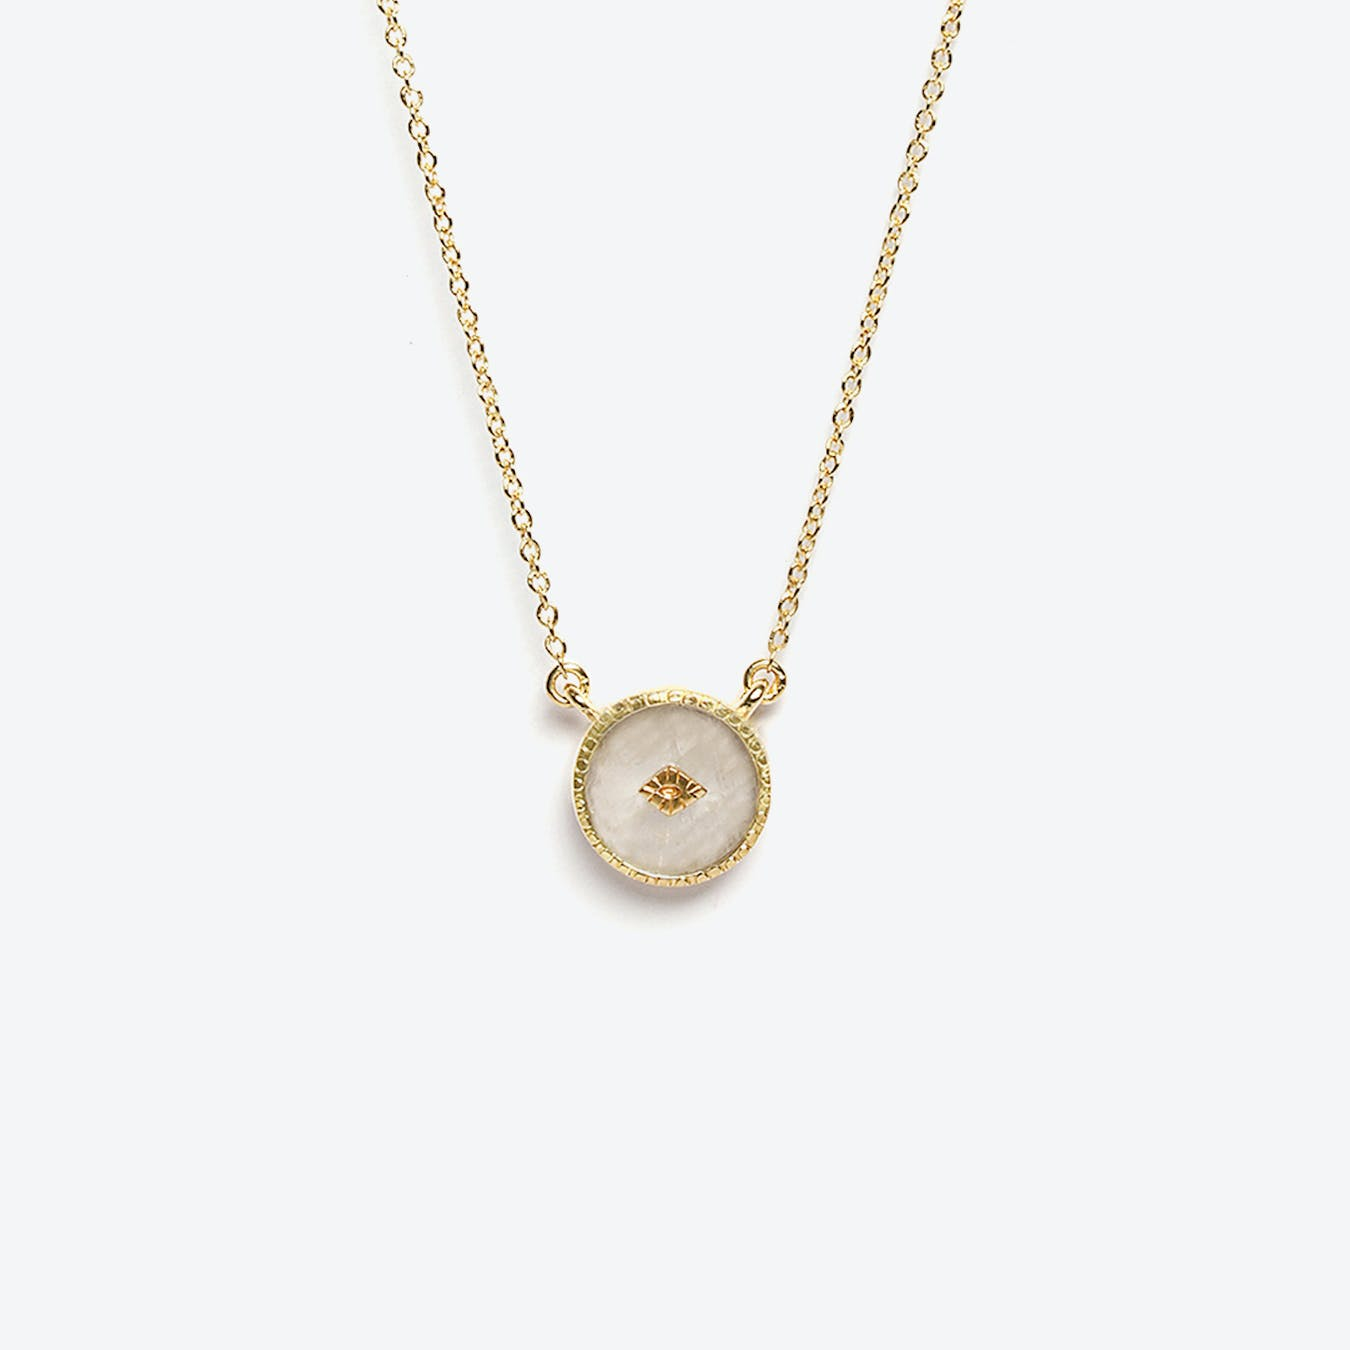 Sanja Necklace - Moonstone